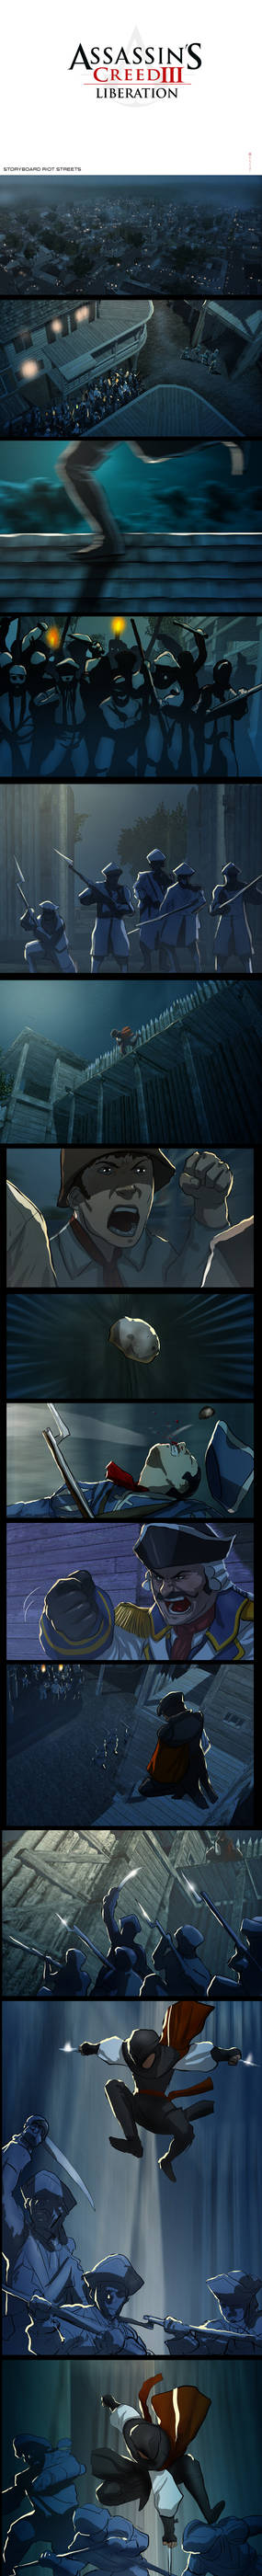 ACIII Liberation Storyboard Riots